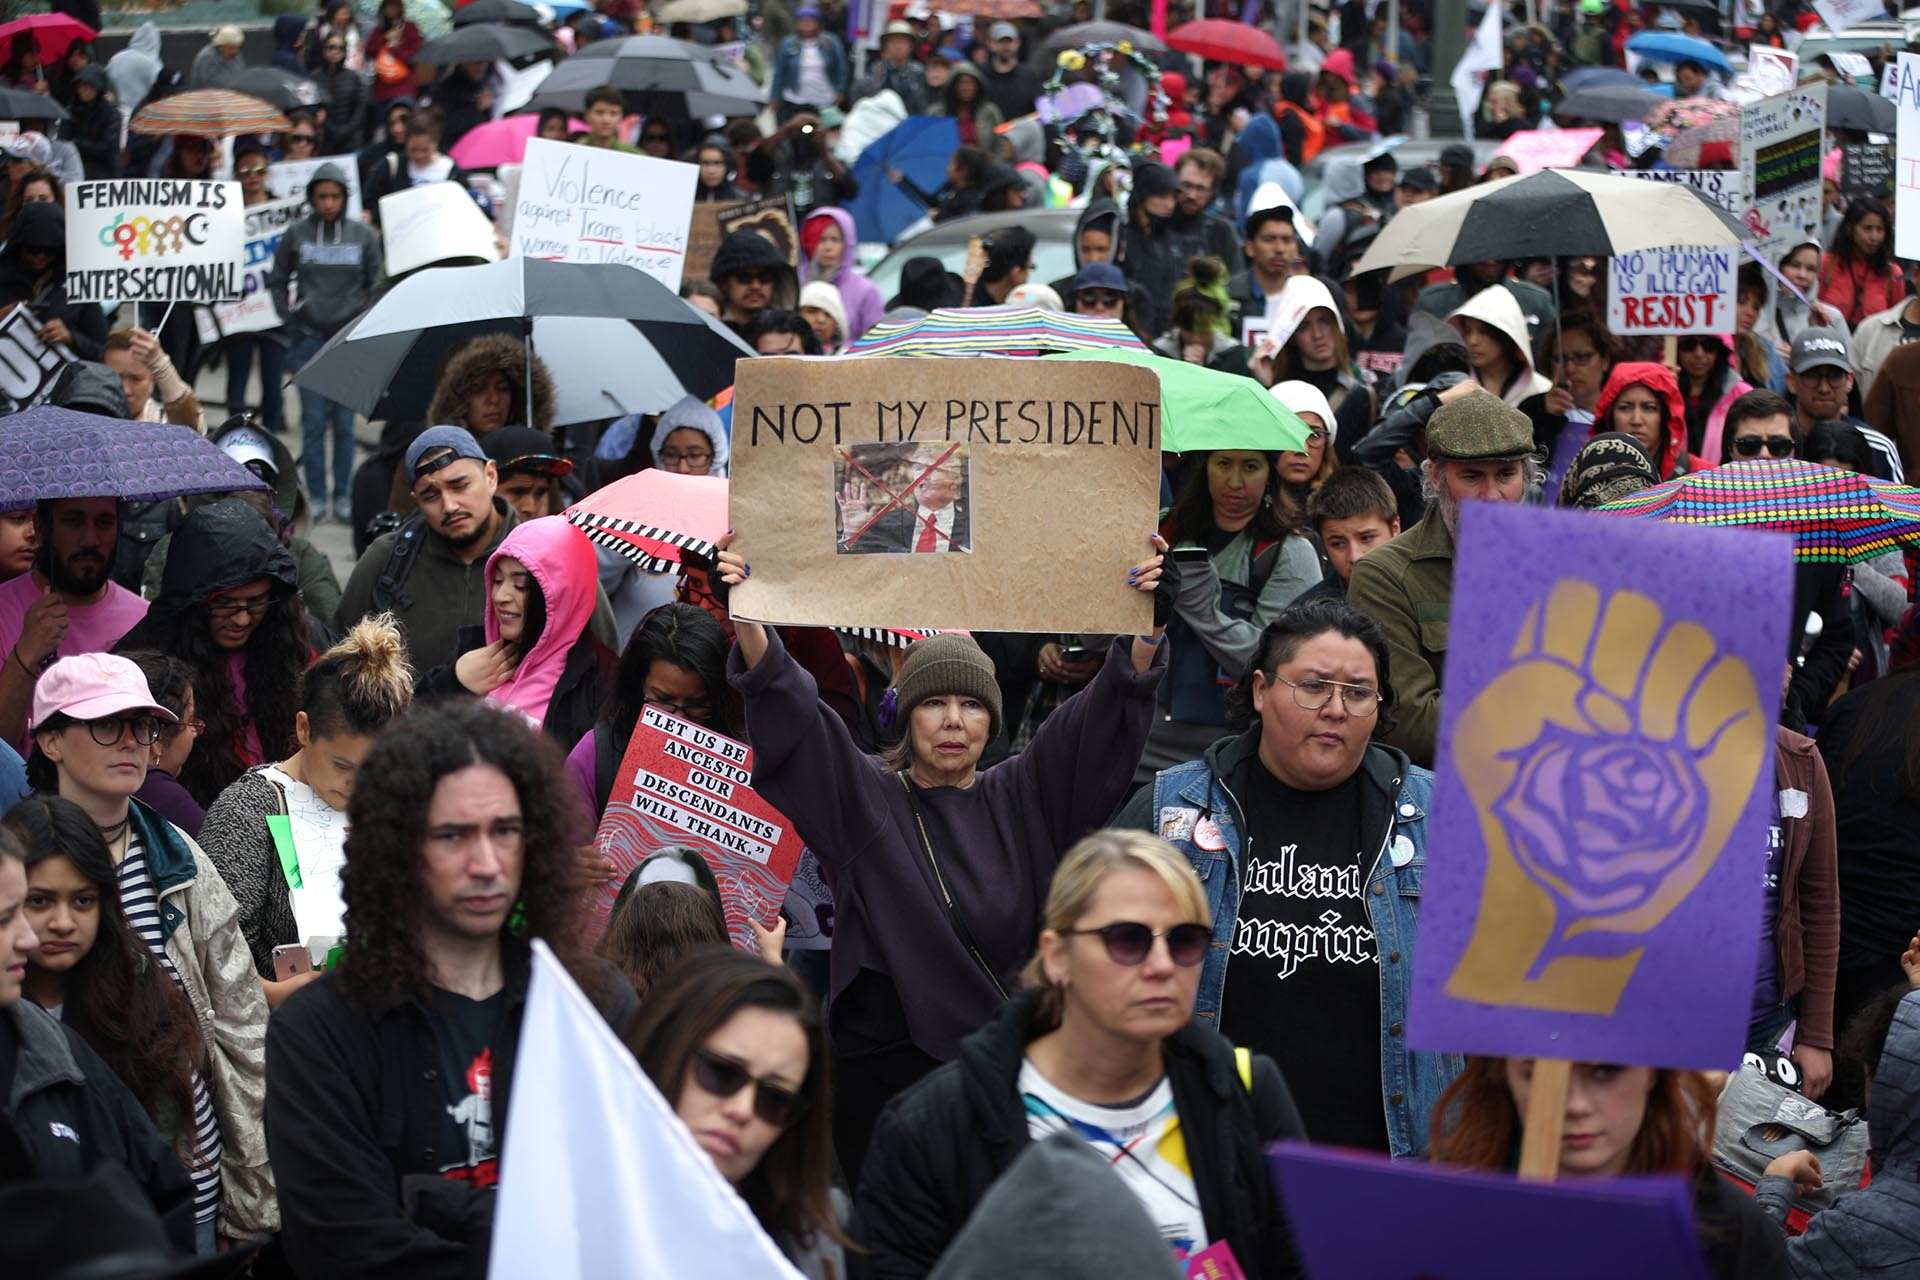 People listen to speakers in the rain at a rally for International Women's Day in Los Angeles, California, U.S., March 5, 2017. REUTERS/Lucy Nicholson